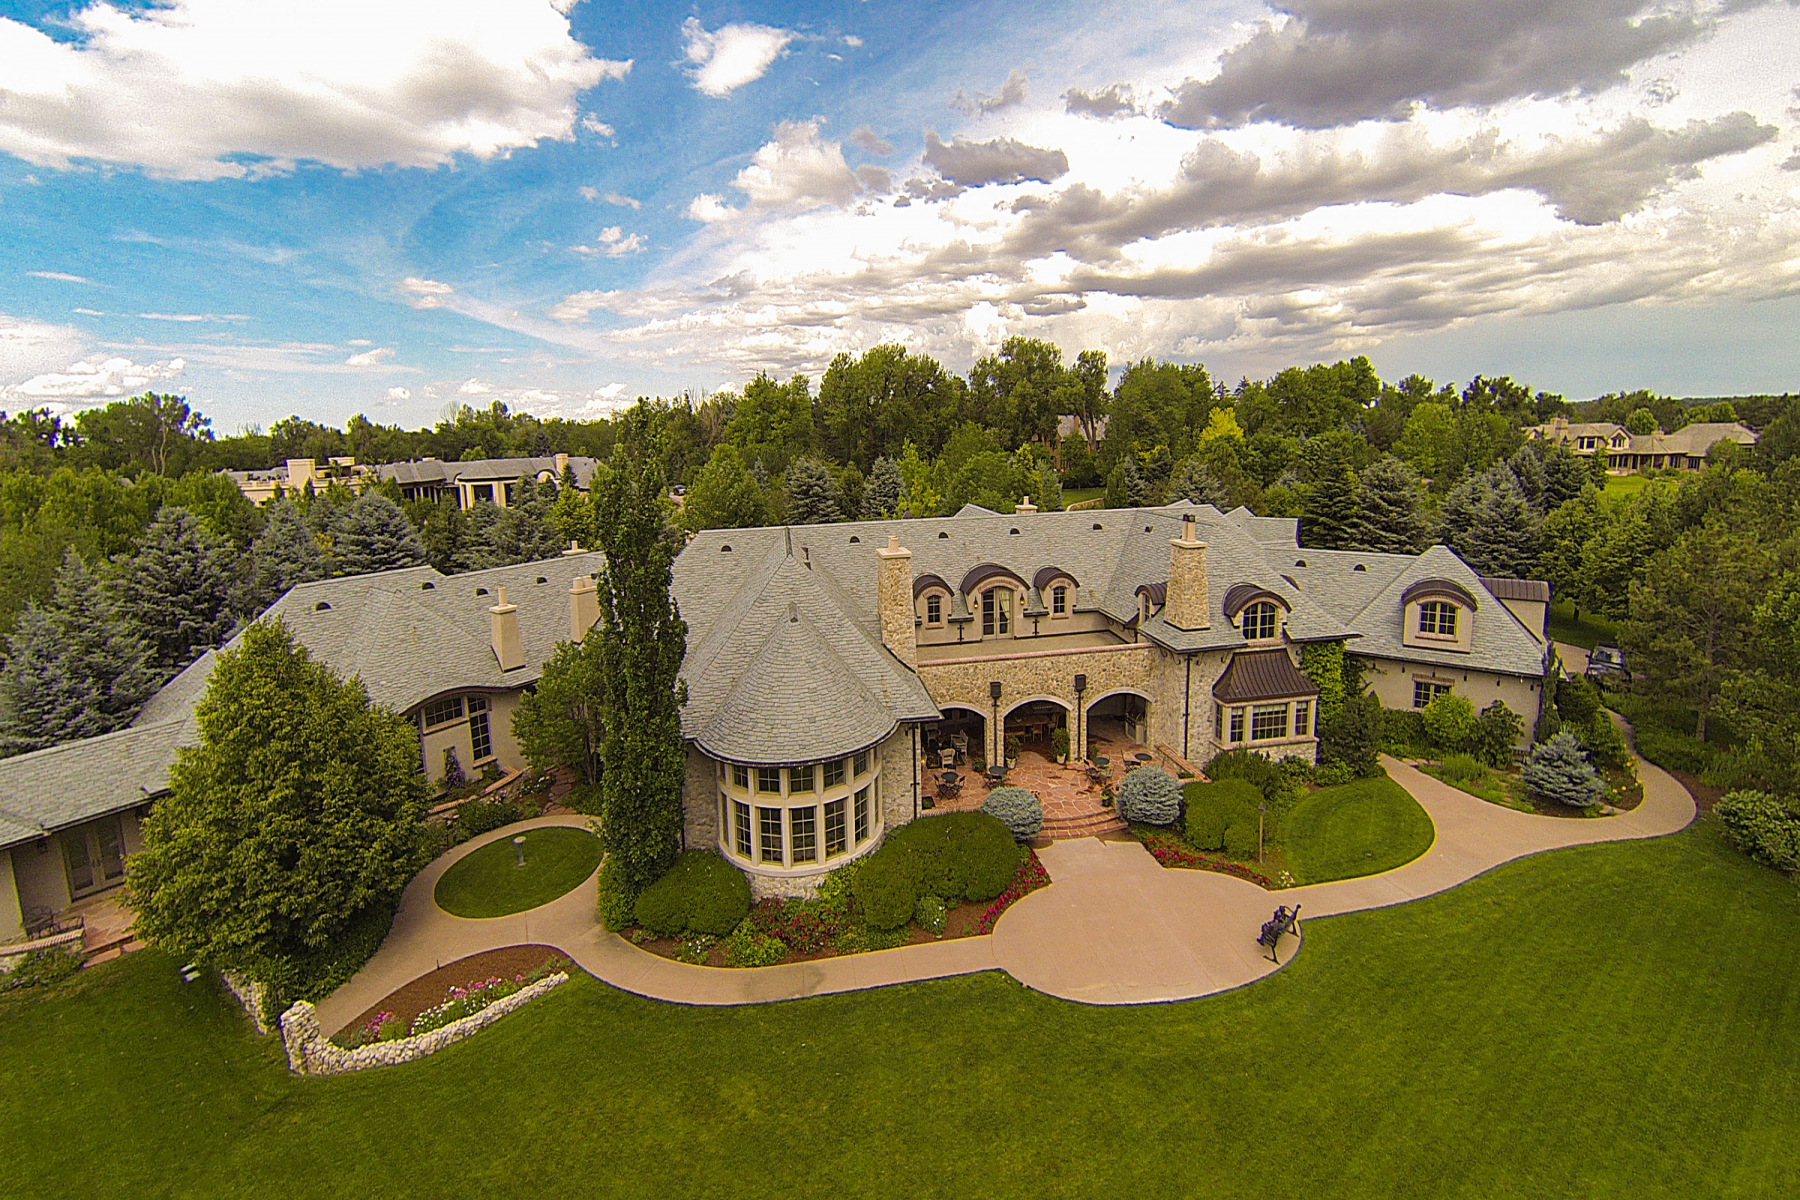 Single Family Home for Sale at Greystone Manor Boasts Spectacular Mountain Views 22 Cherry Hills Park Drive Cherry Hills Village, Colorado, 80113 United States